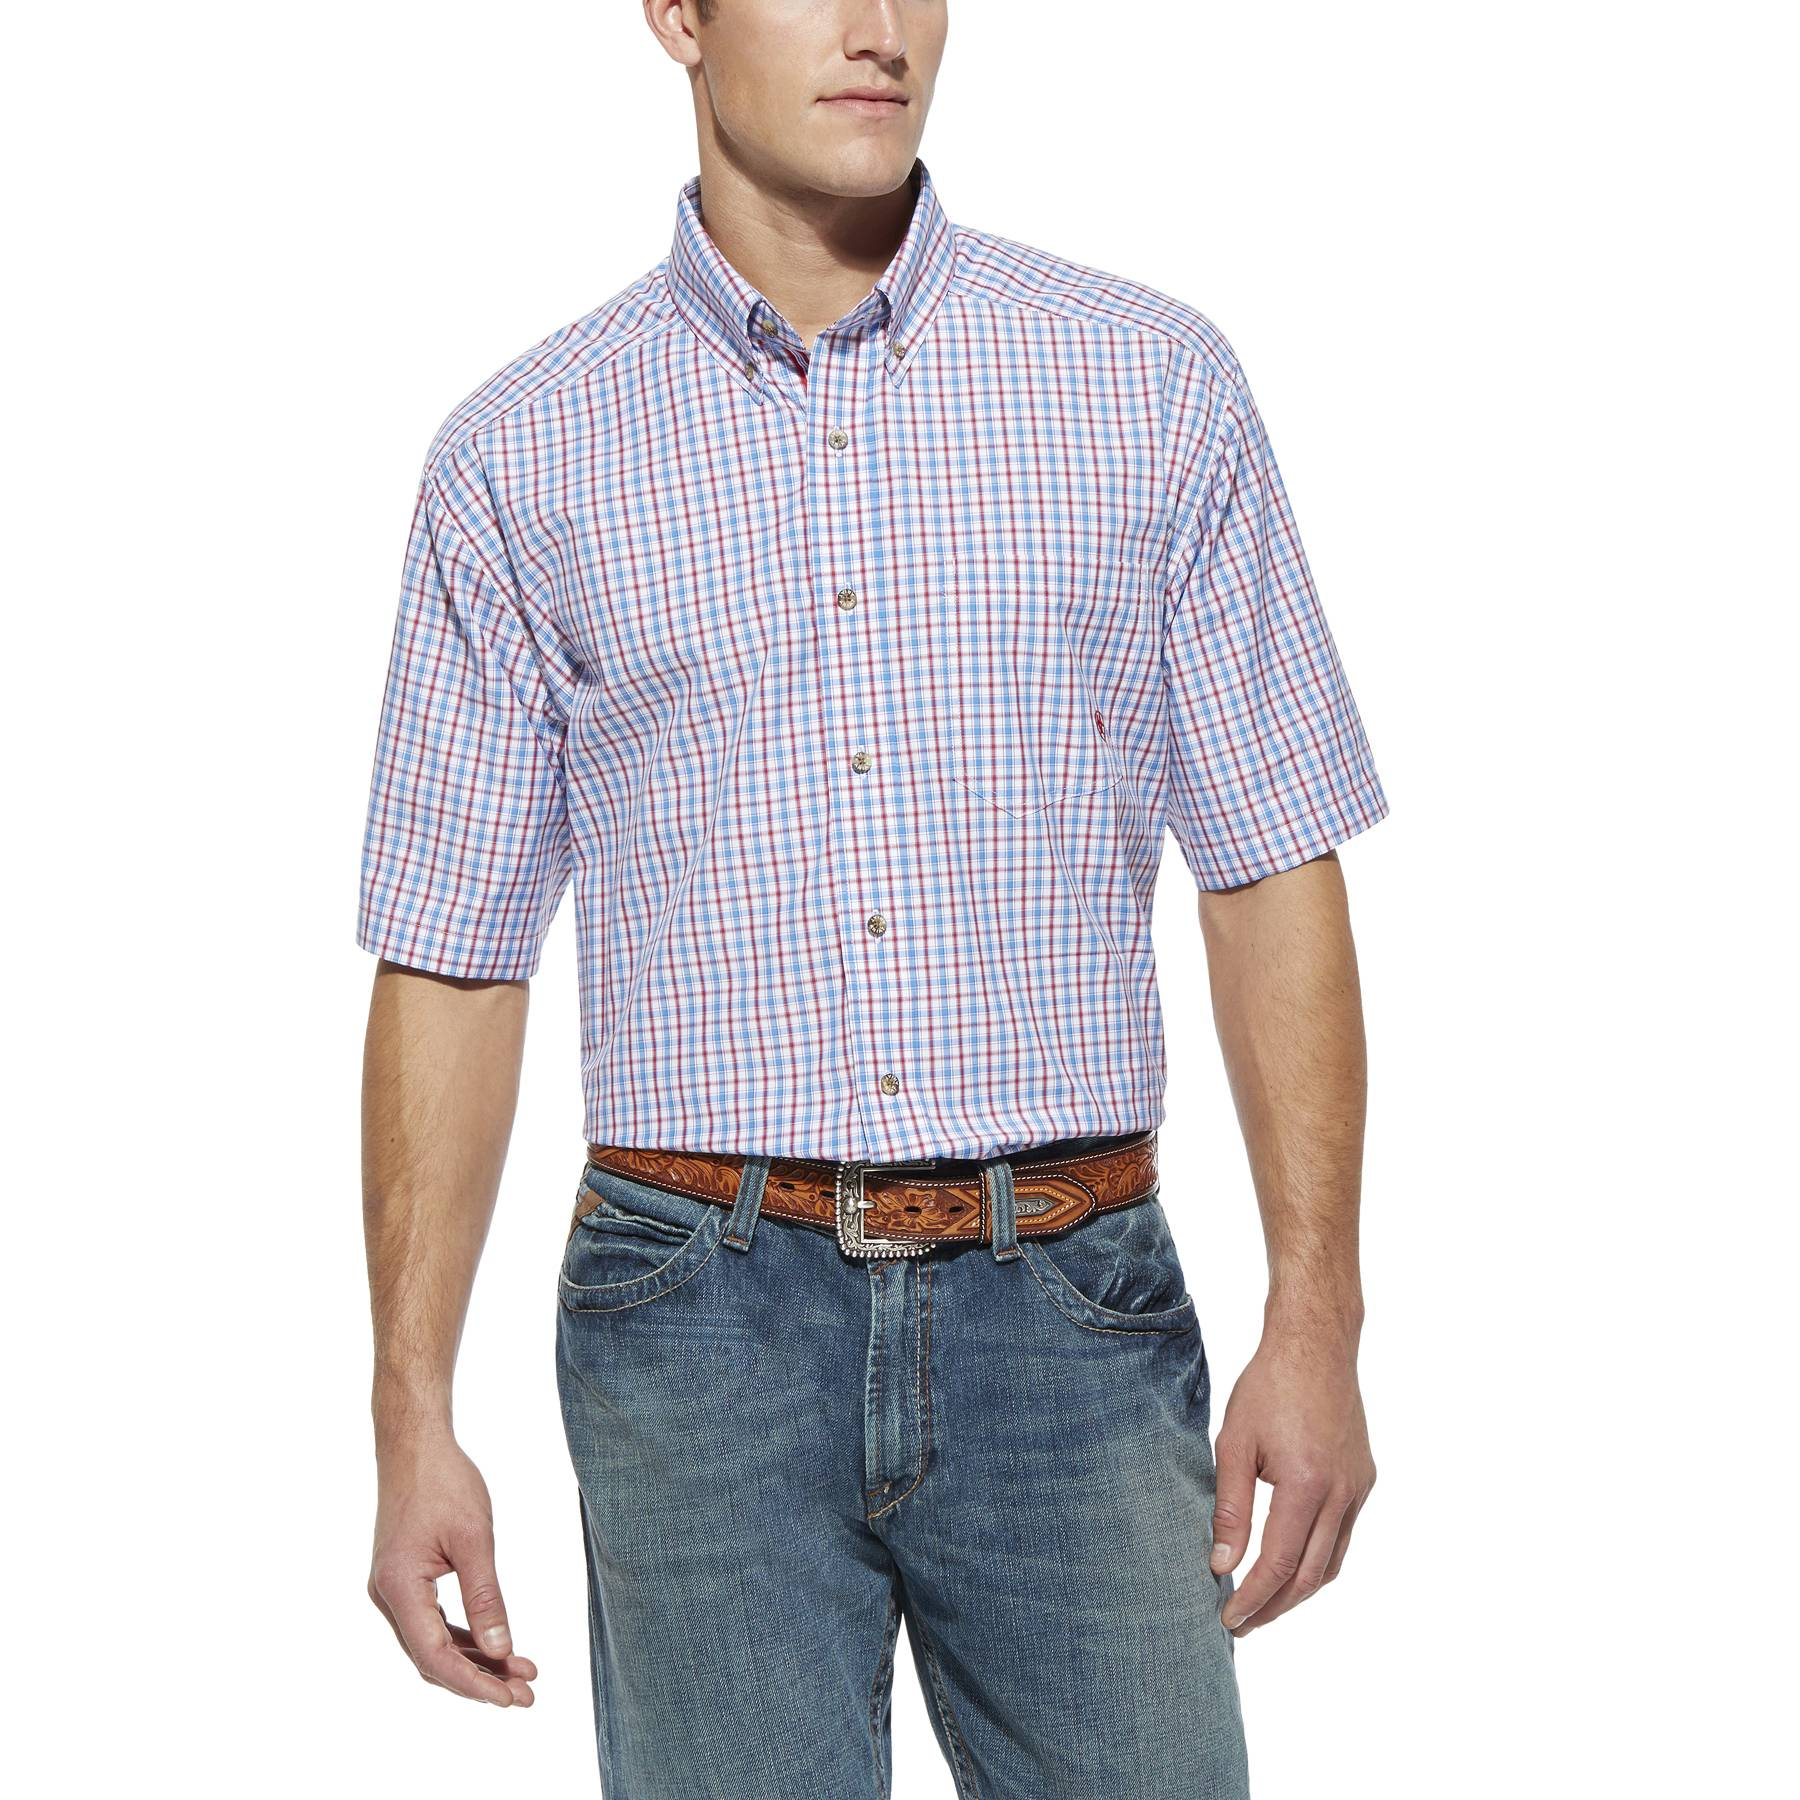 Ariat Men's Vaughan Performance Short Sleeve Shirt